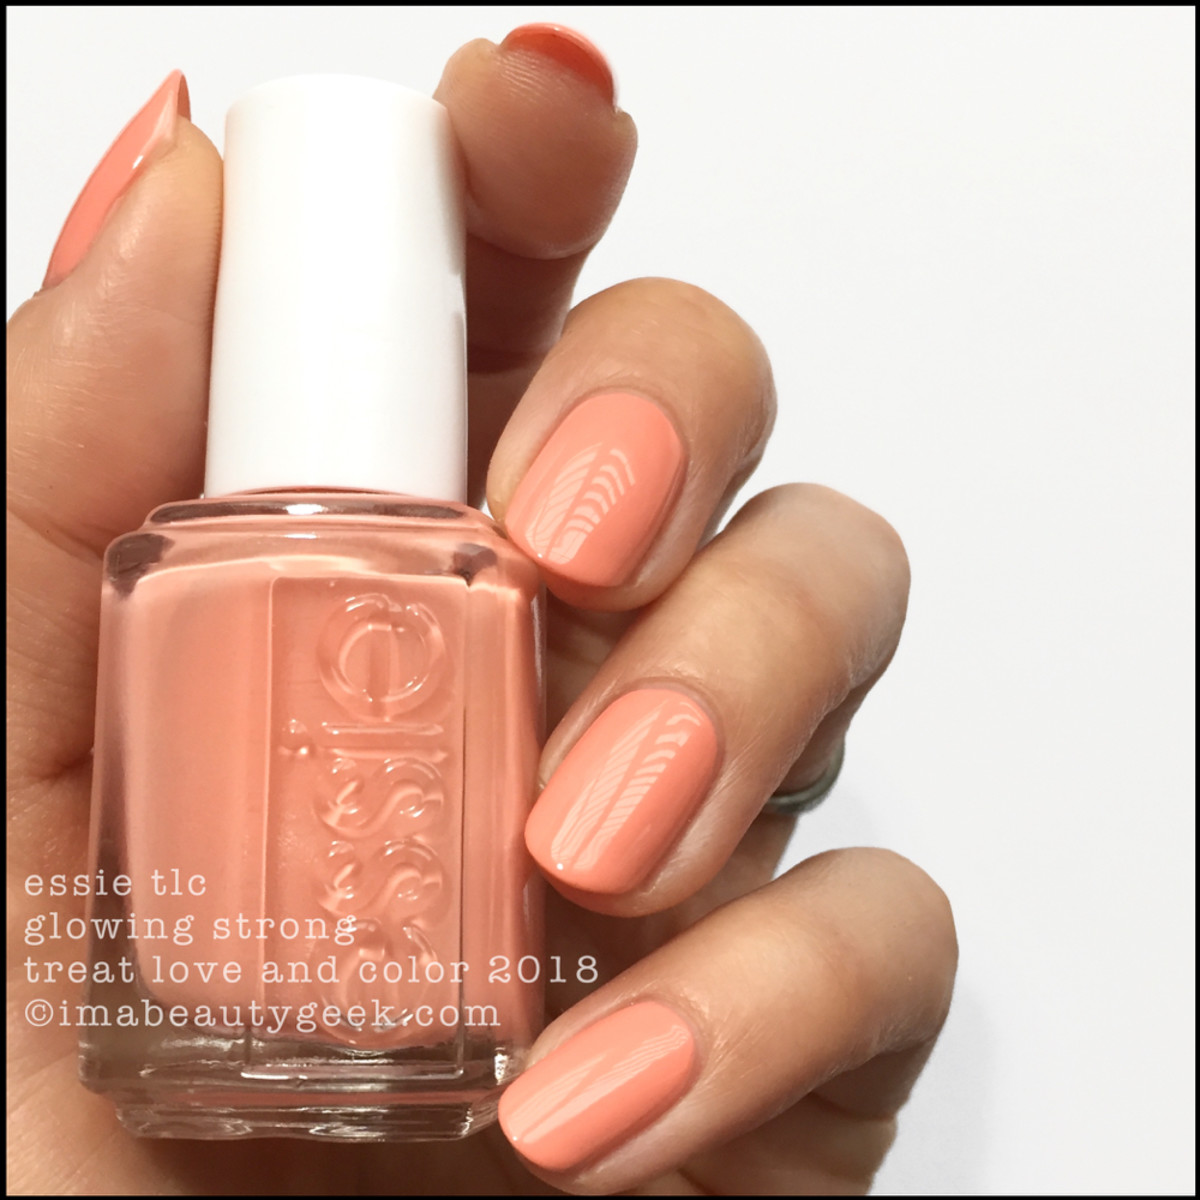 Essie TLC Glowing Strong _ Essie Treat Love Color Swatches 2018 Shade Expansion